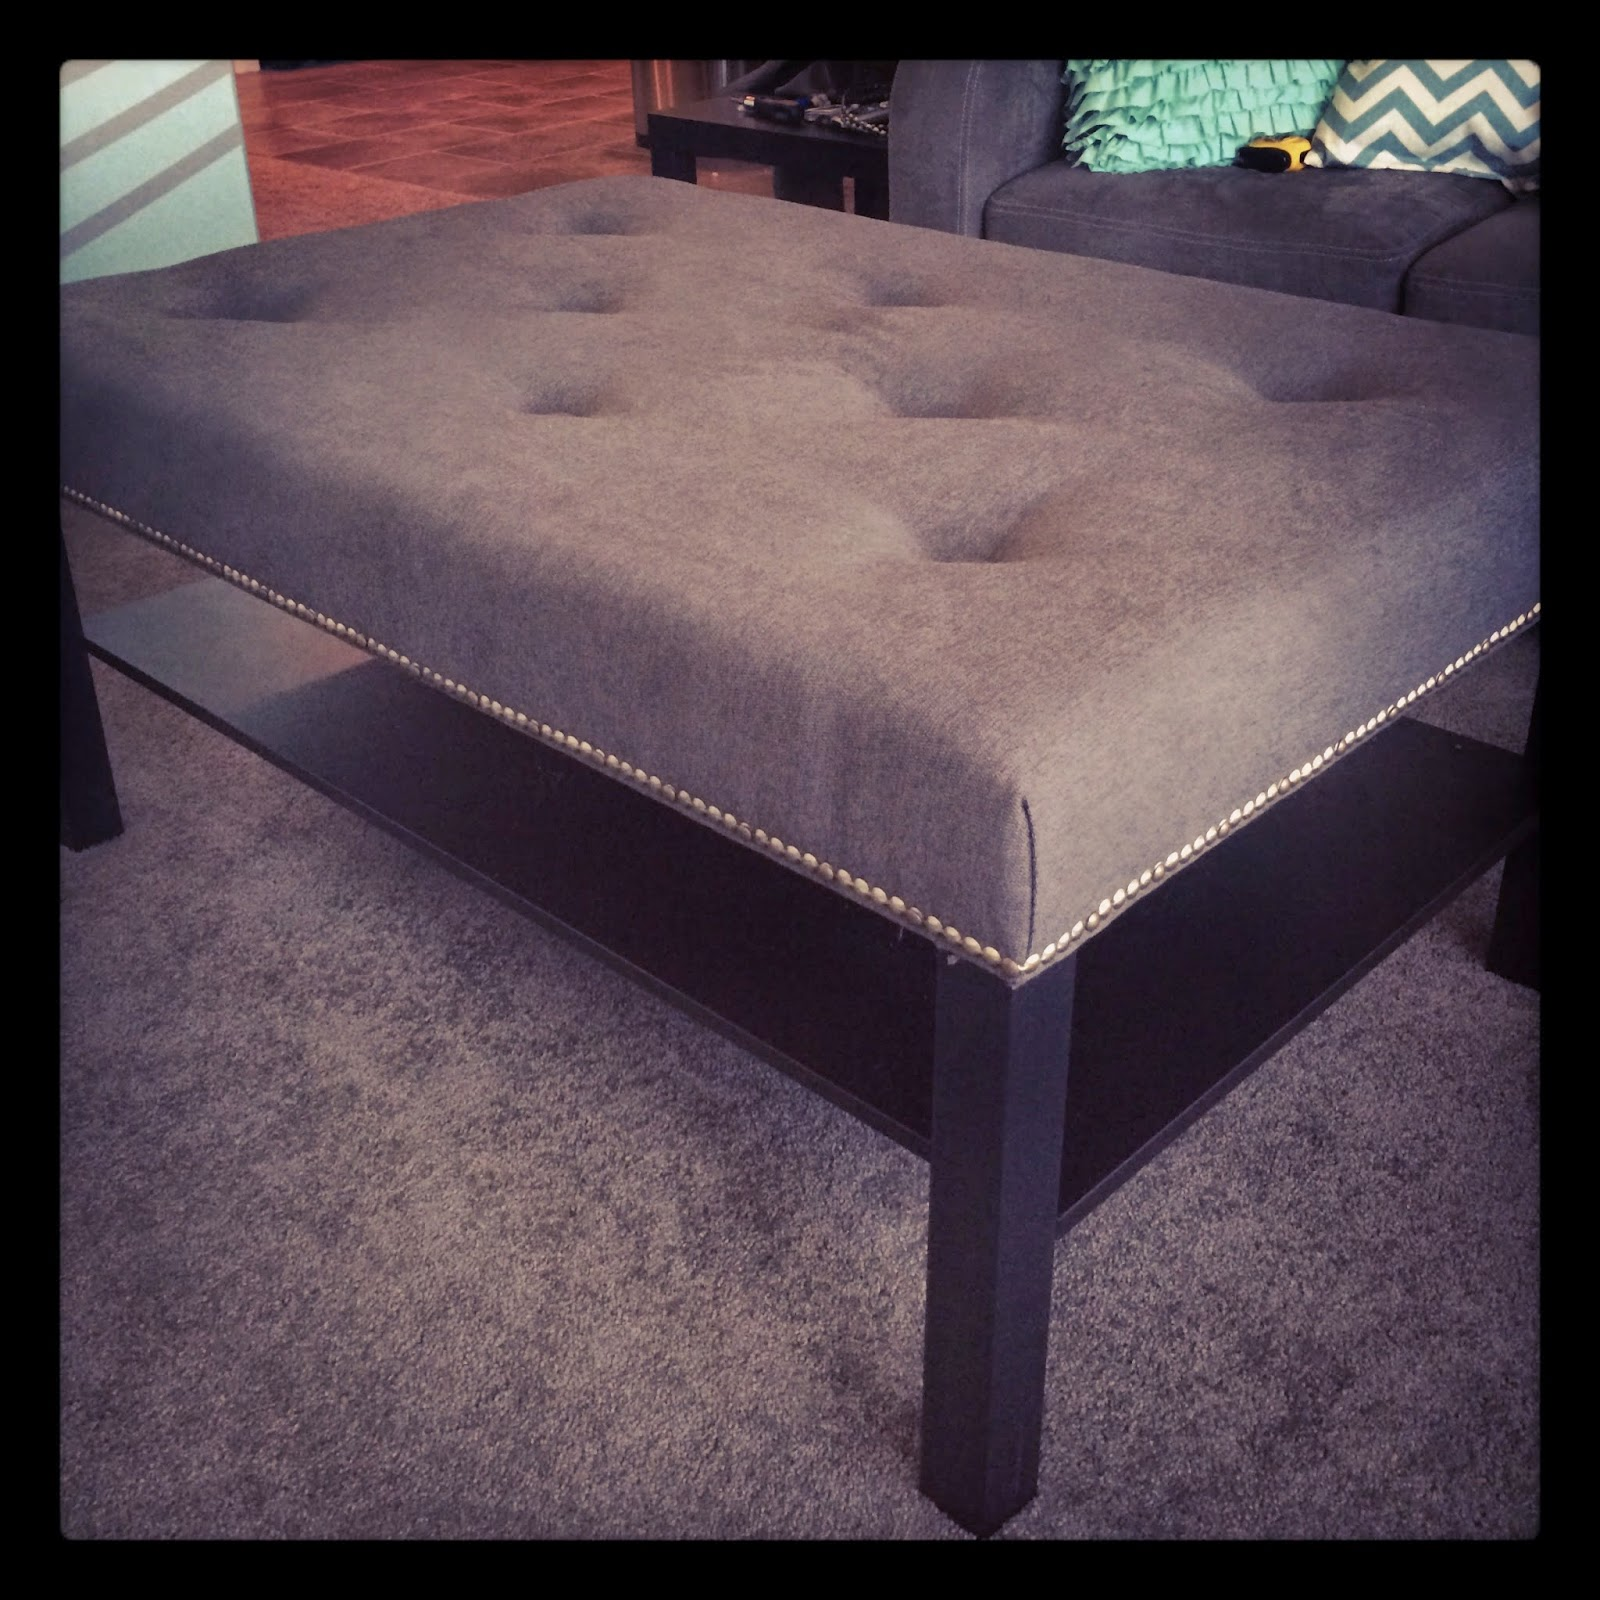 My Beautiful New Ottoman That I Made With Our Old Lack Coffee Table And About 65 In Supplies